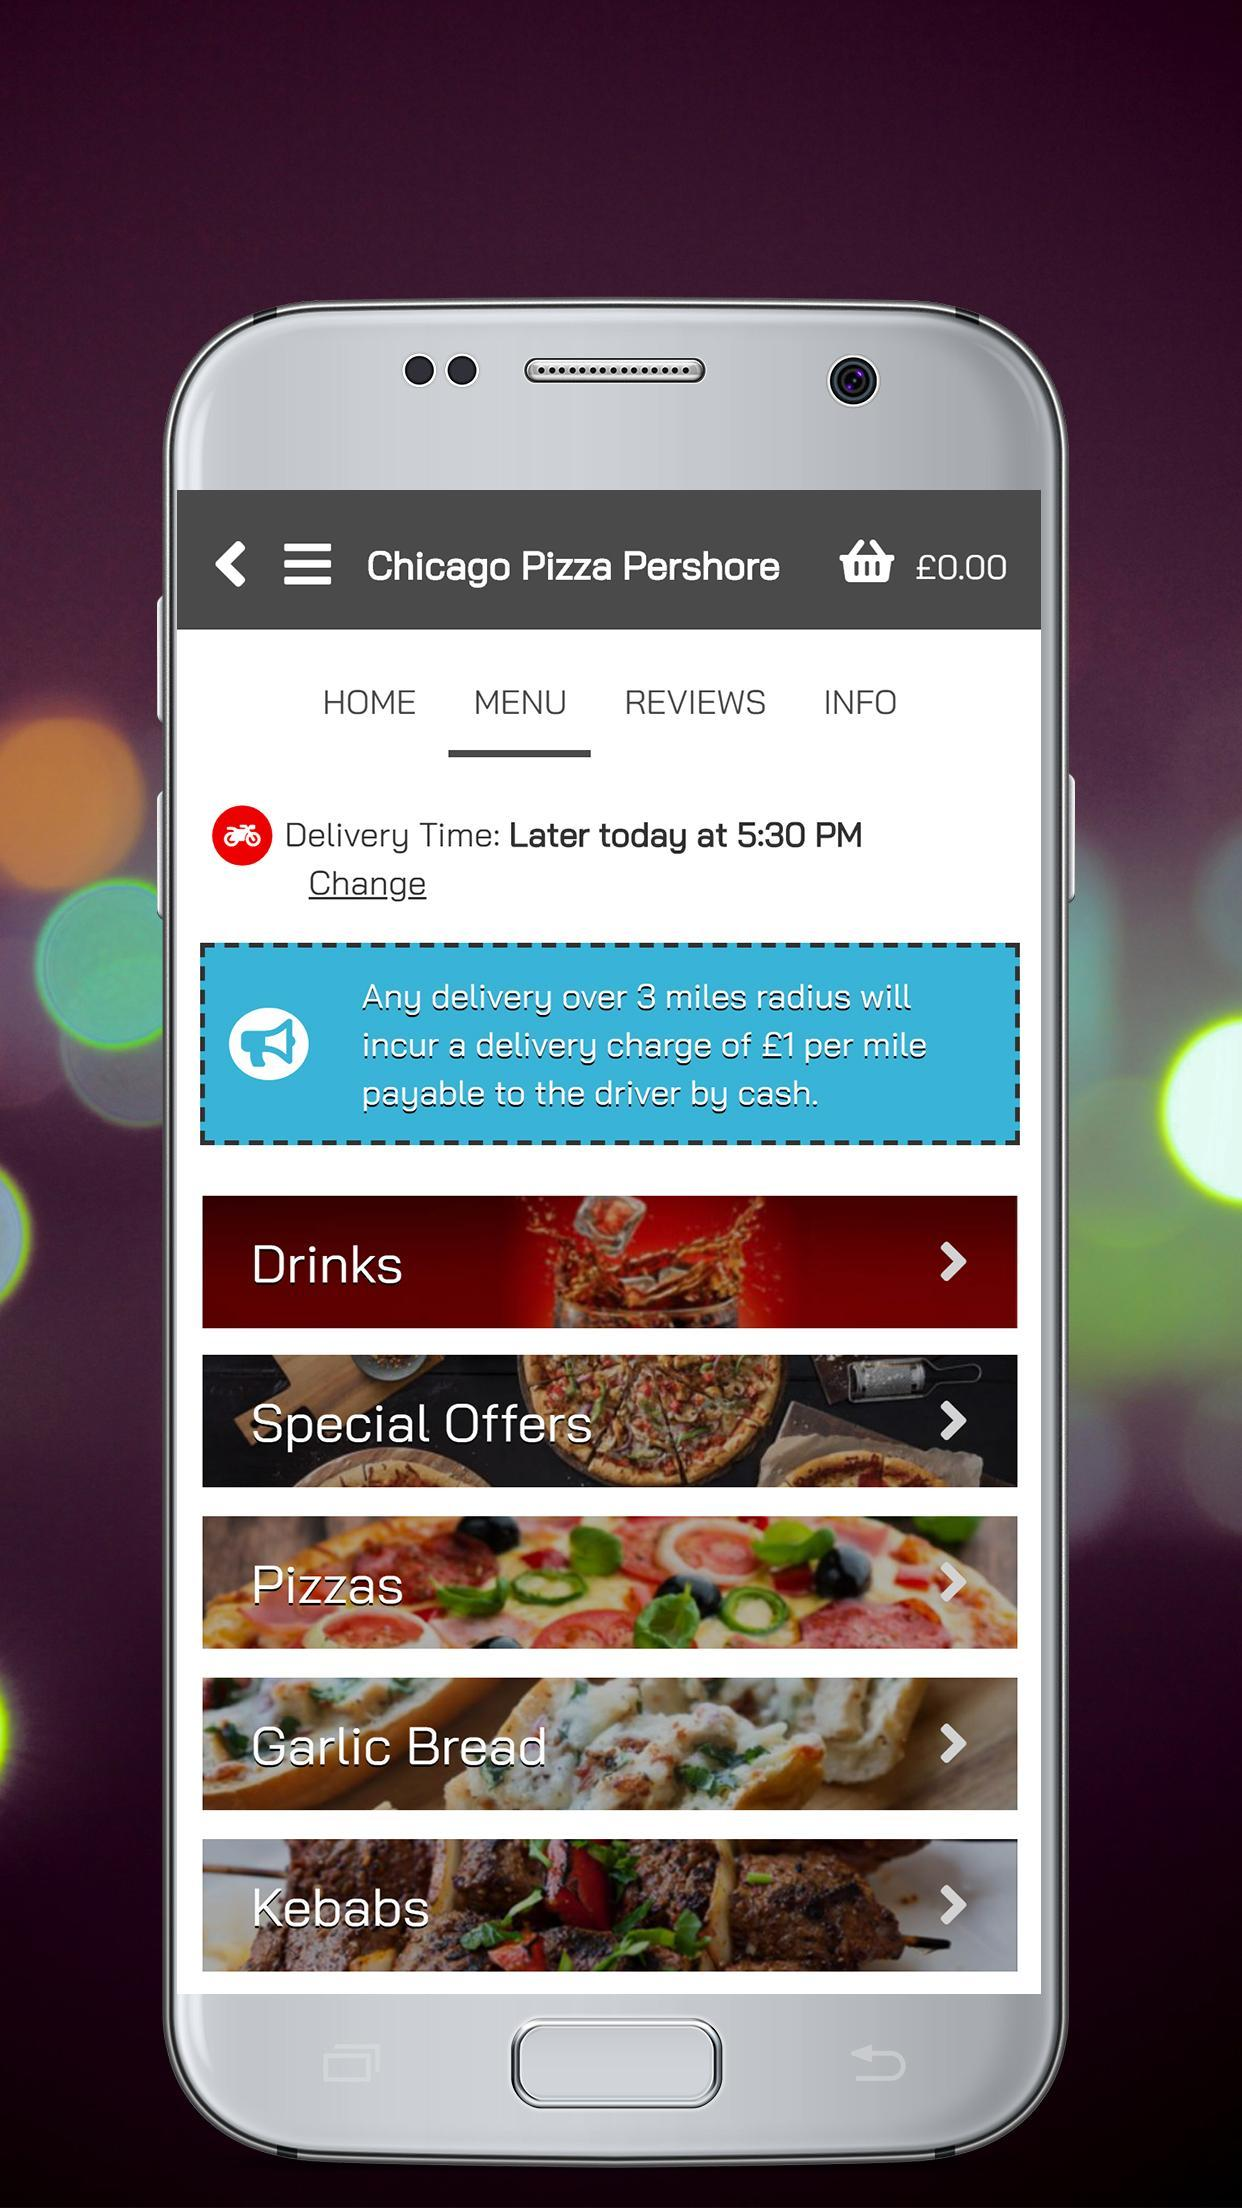 Chicago Pizza Pershore For Android Apk Download